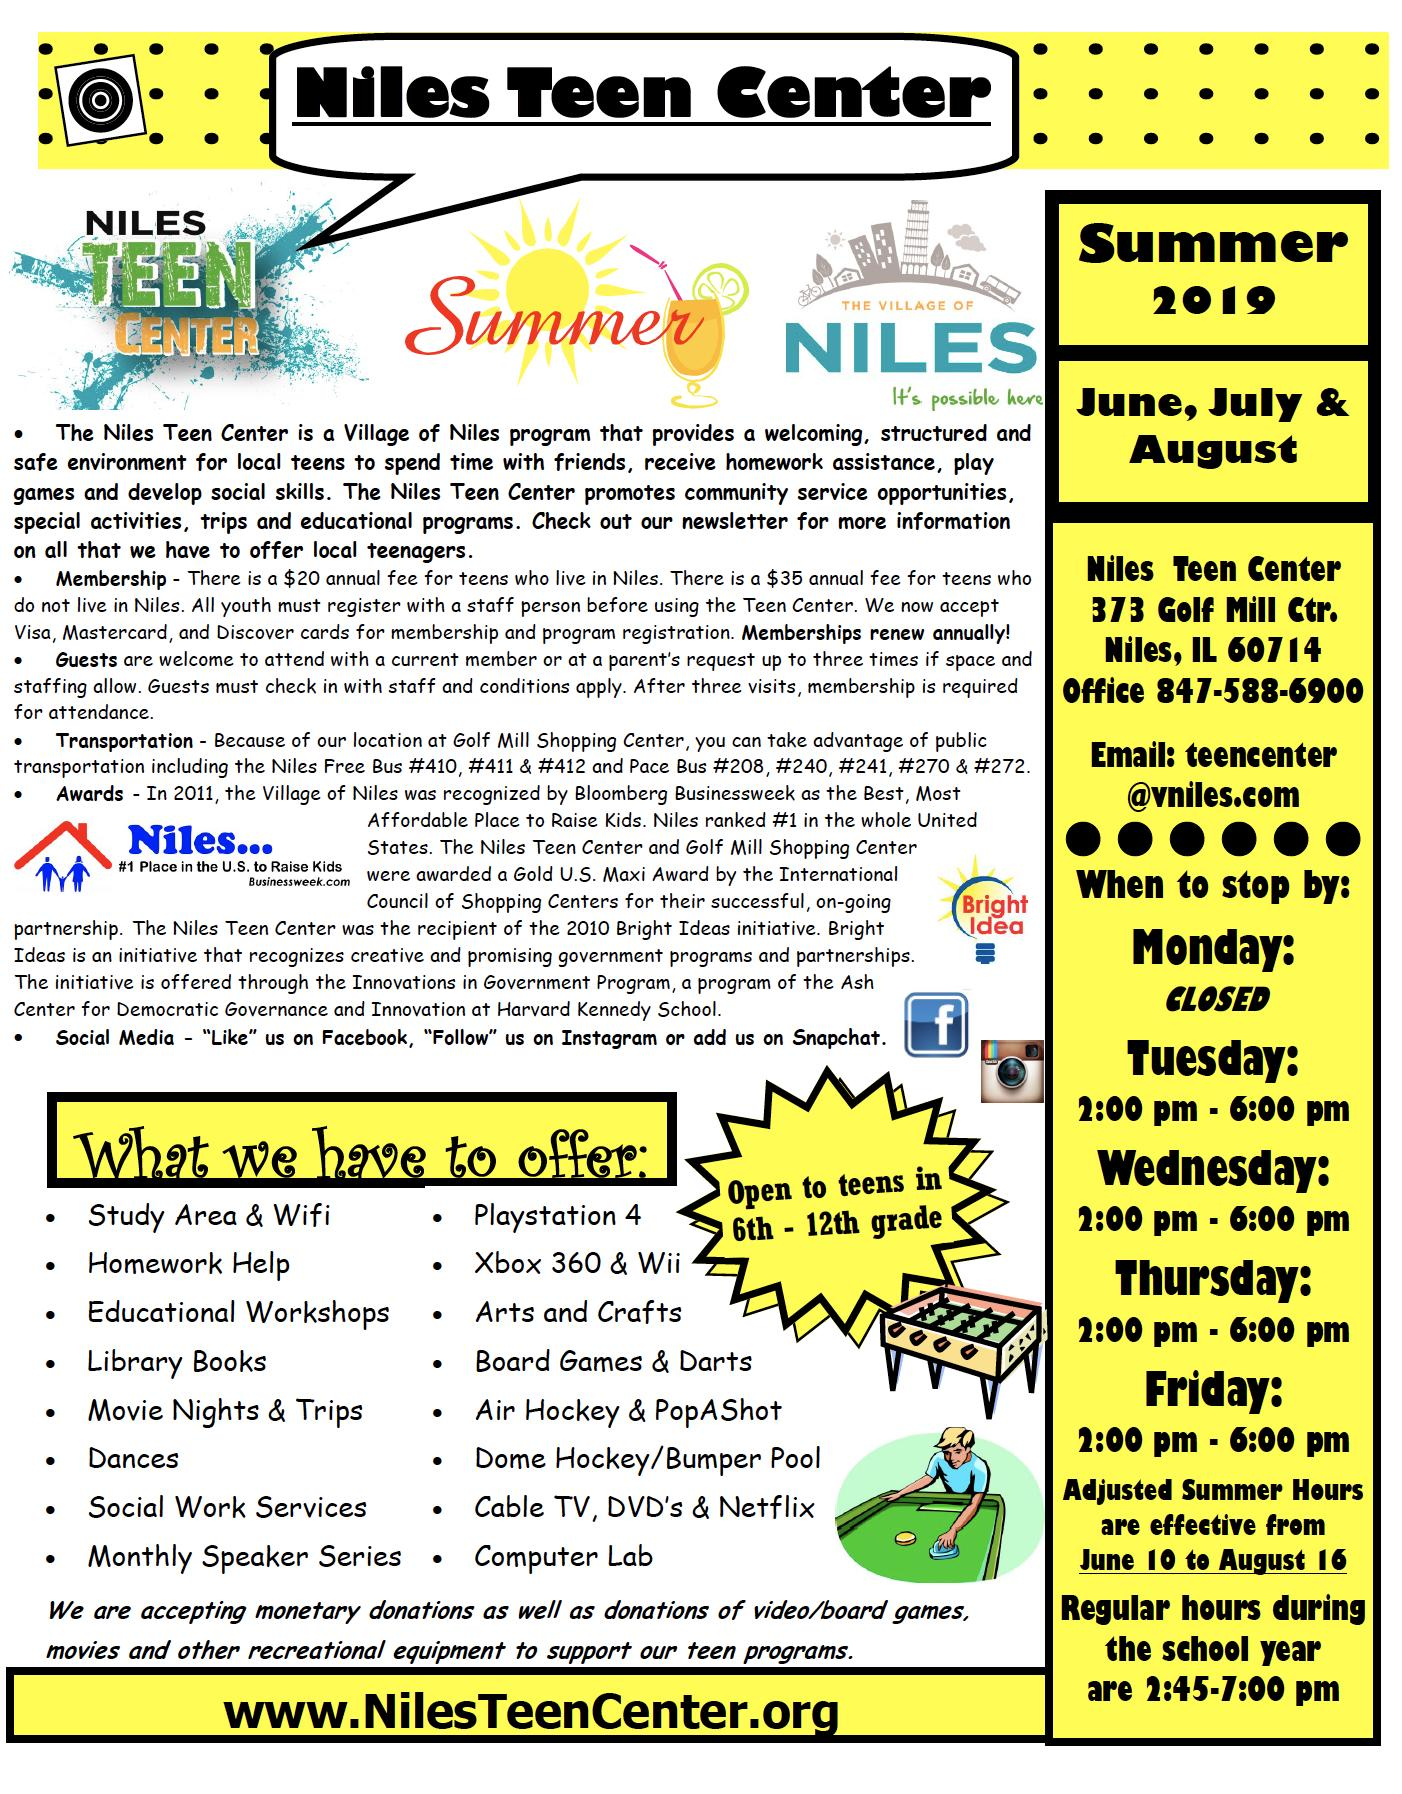 Niles Teen Center Summer News